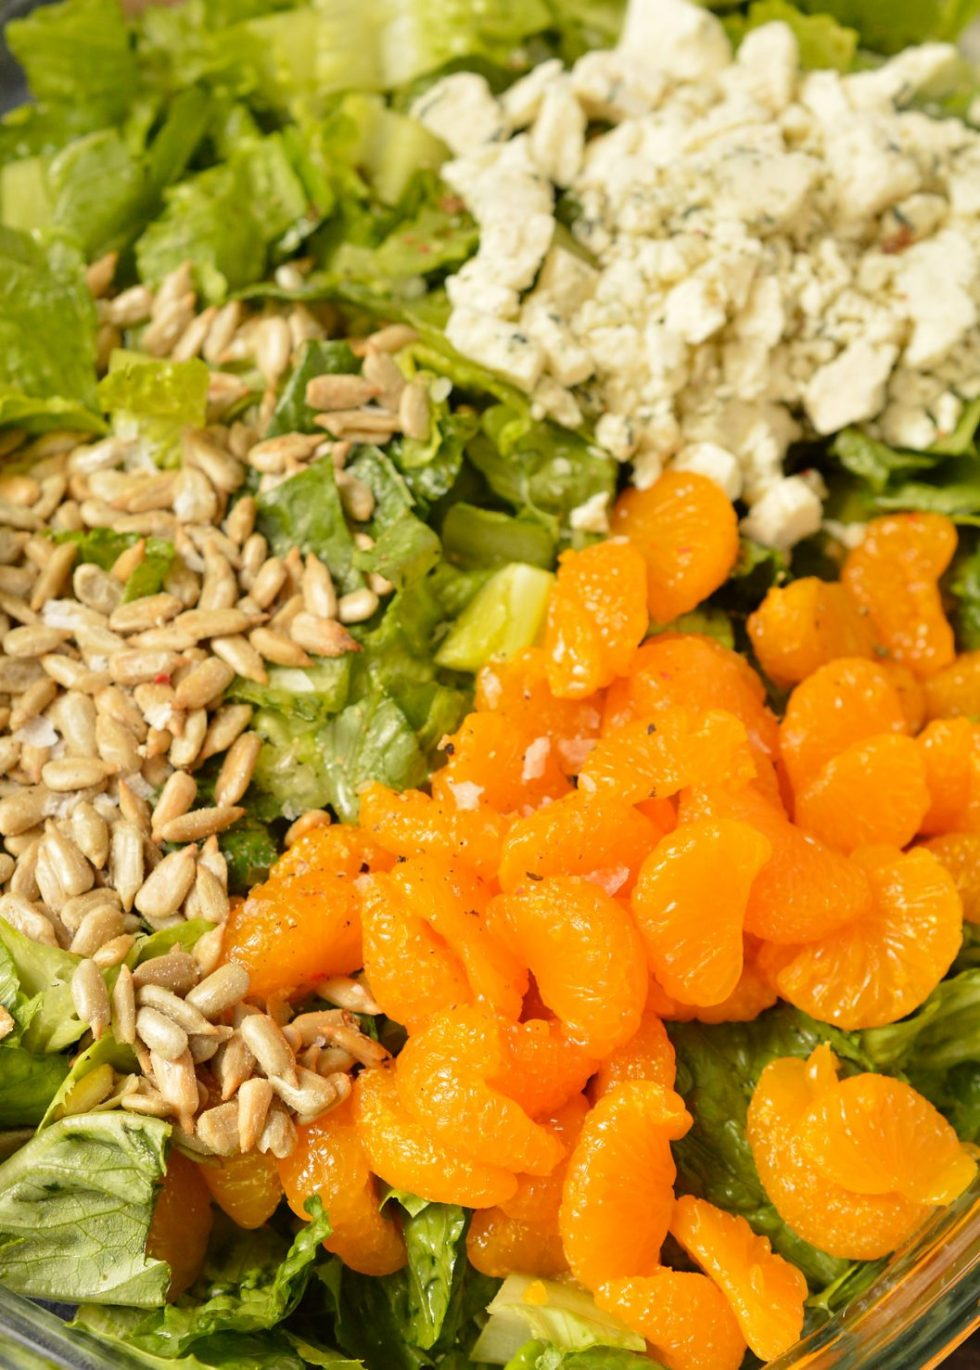 ThisBalsamic Mandarin Orange Salad may seem like an odd combo, but it works! The creamy balsamic dressing, sunflower seeds, gorgonzola cheese and mandarin oranges are the perfect combo of flavors. This is one of my all-time favorite salads because there is nothing boring about this recipe!